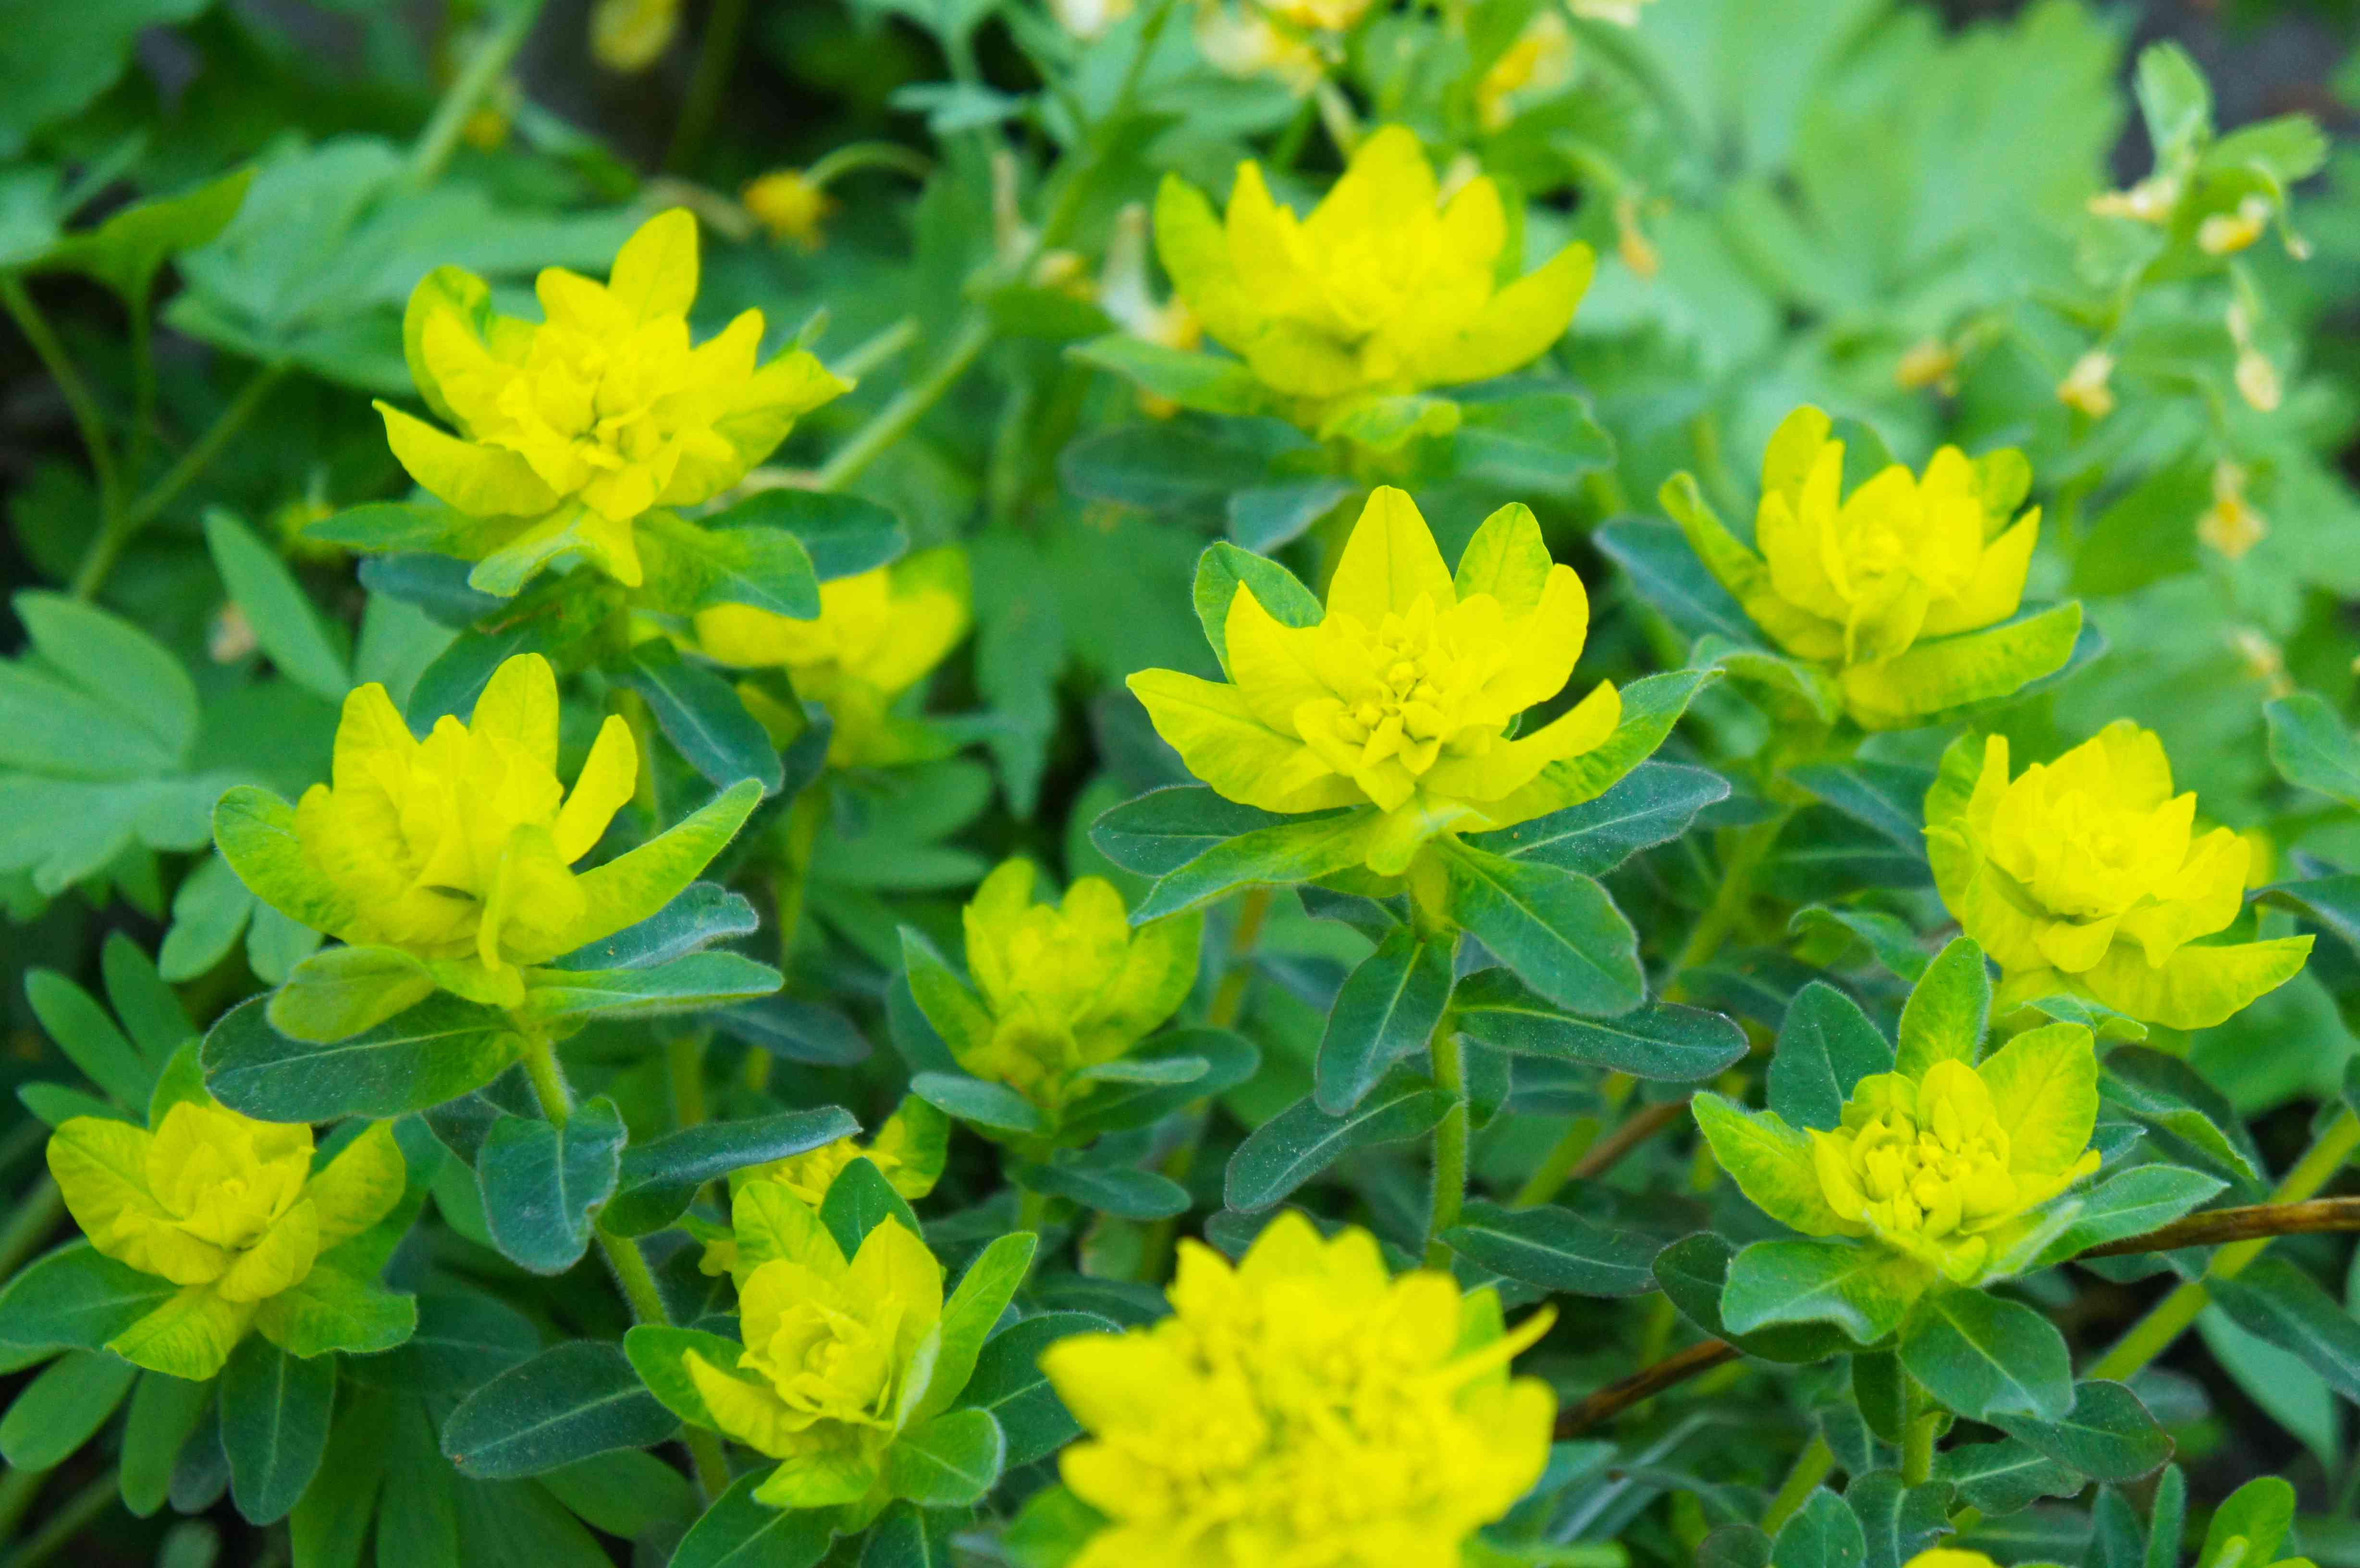 Euphorbia polychroma or cushion spurge green and yellow plant